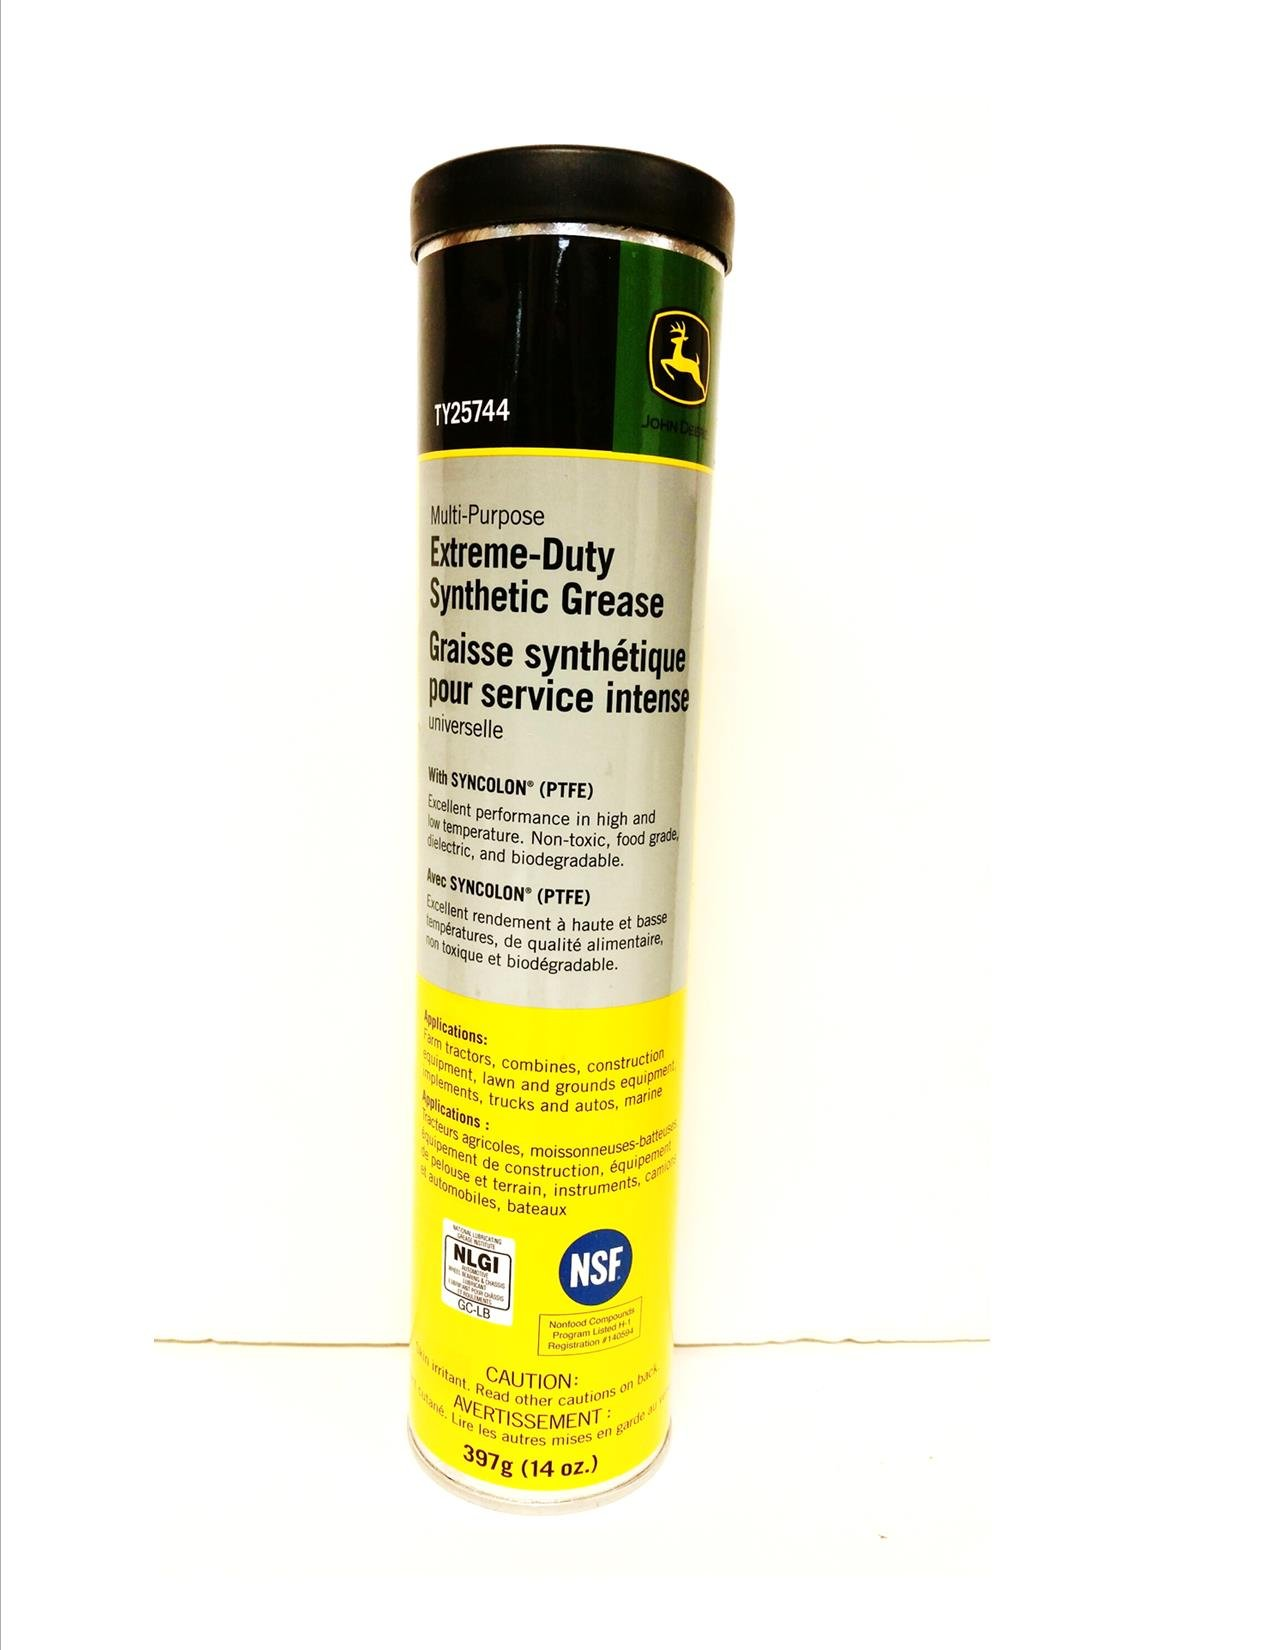 John Deere Multi-Purpose Extreme-Duty Synthetic Grease CASE of 10 TY25744 by John Deere